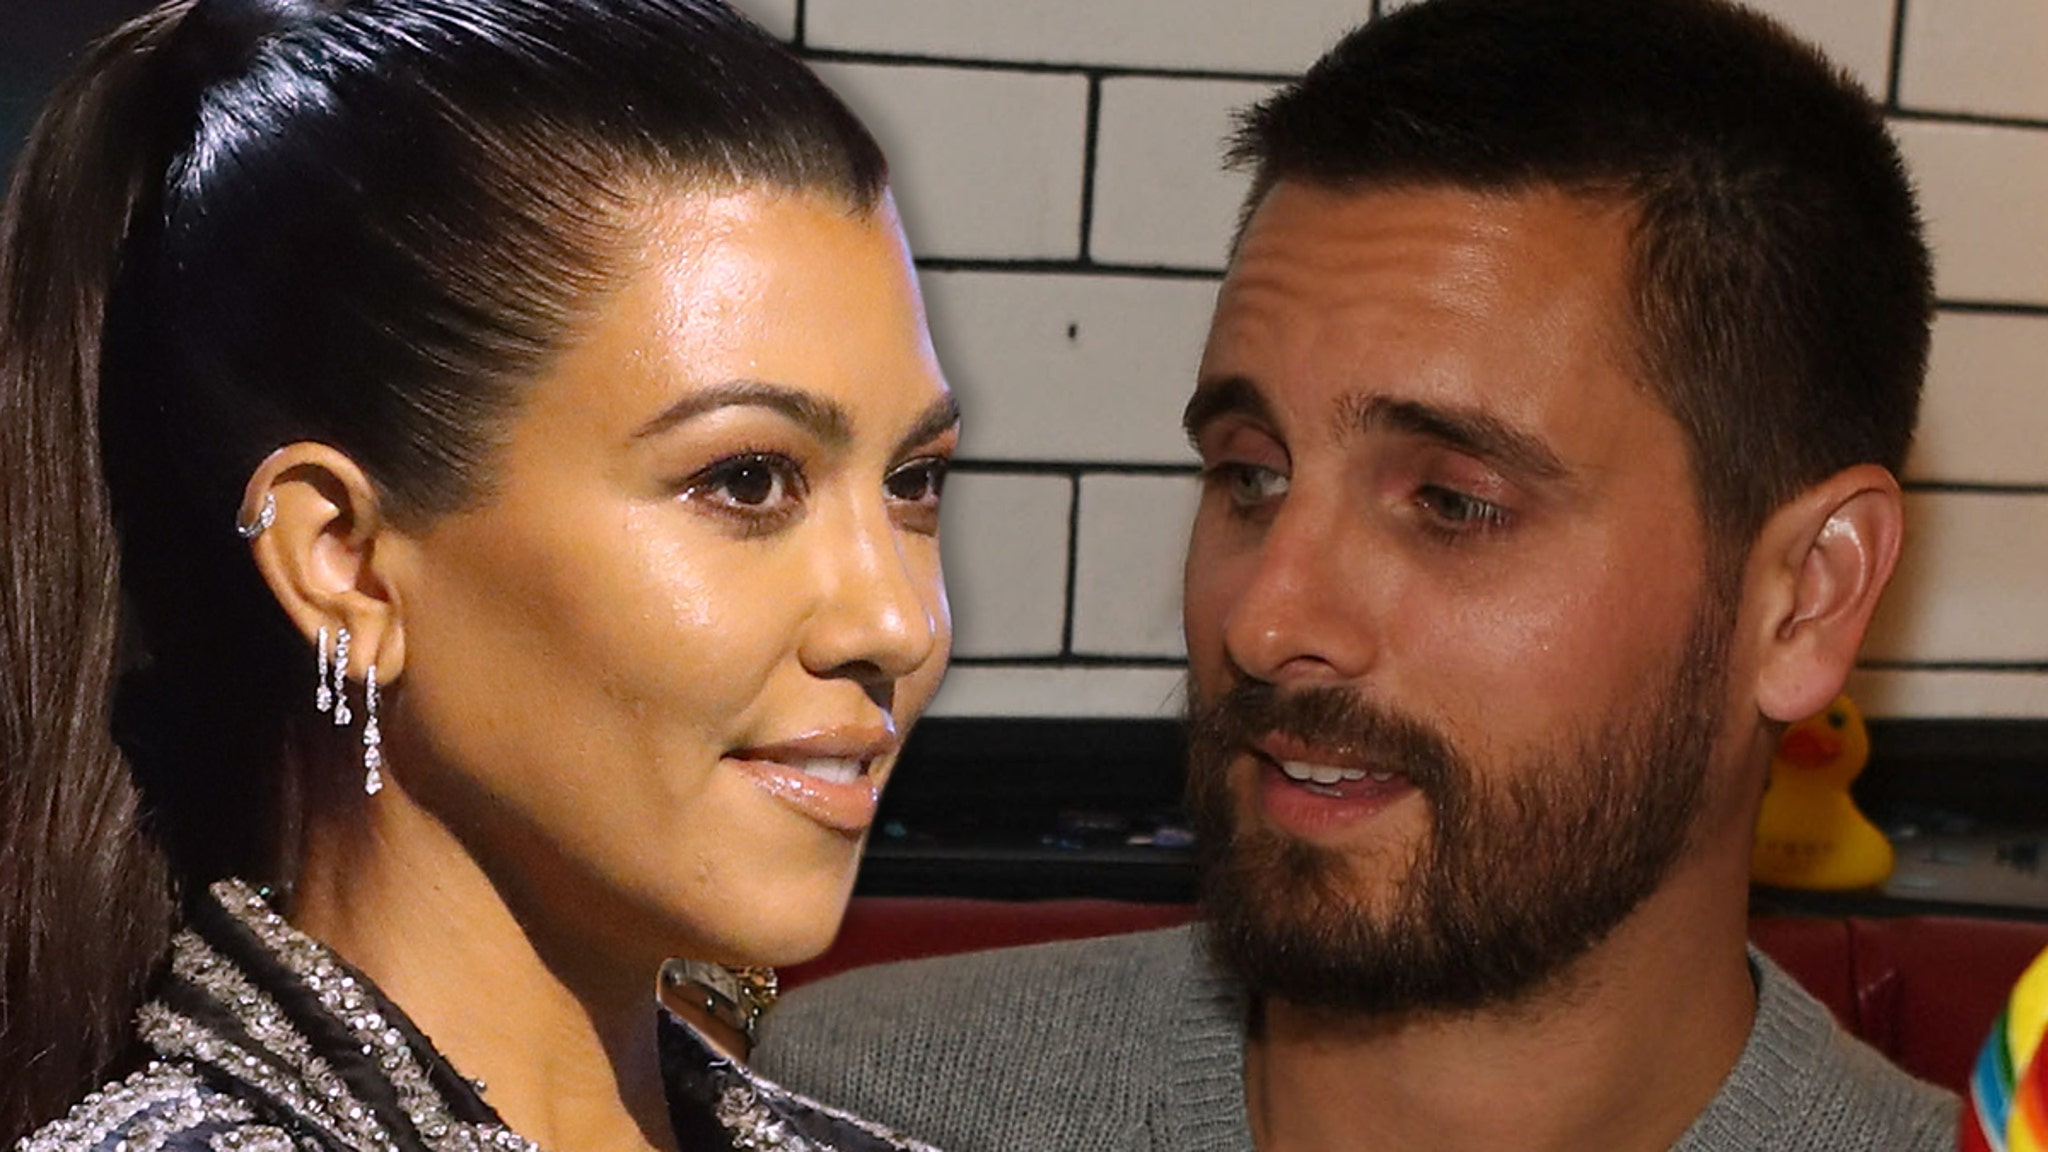 Kourtney Kardashian & Scott Disick Exes Spending More Time Together ... But They're NOT a Couple